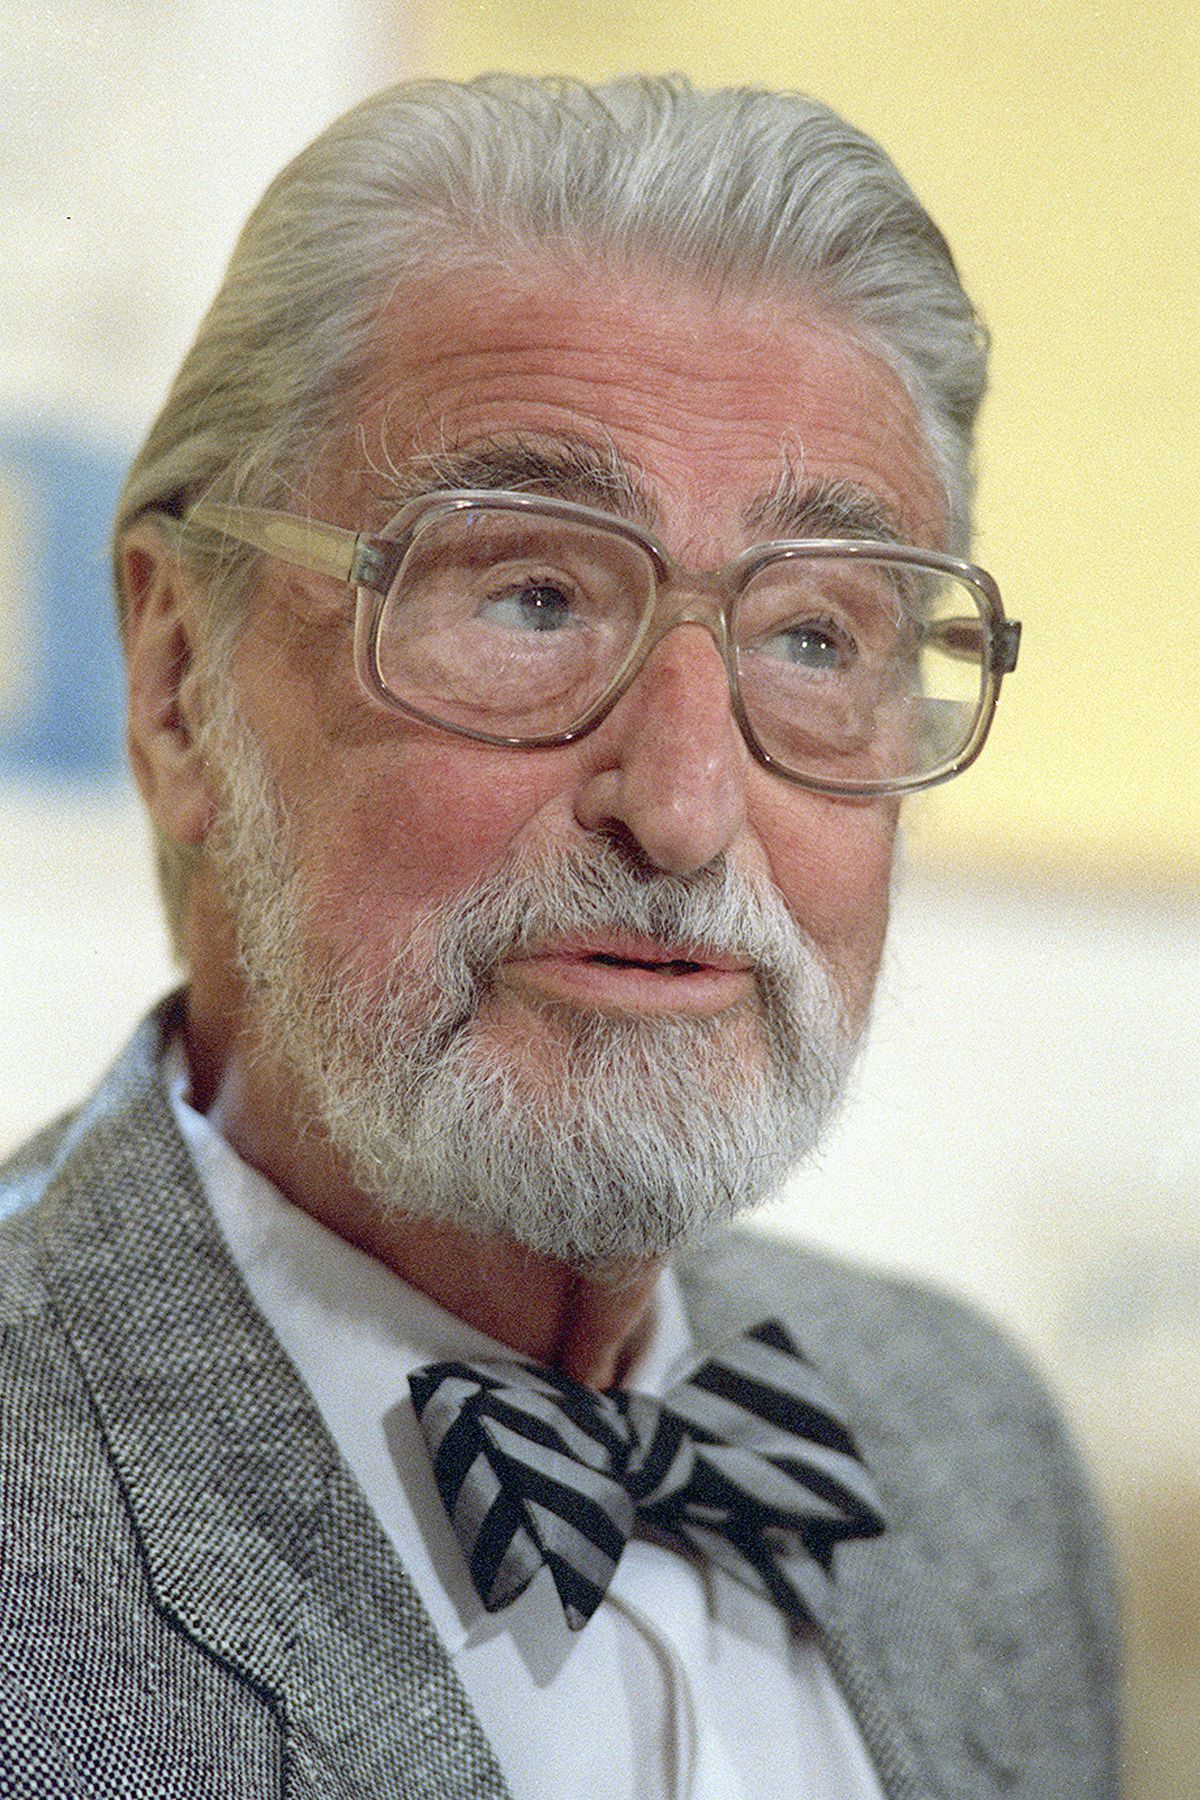 In an April 3, 1987, file photo, American author, artist and publisher Theodor Seuss Geisel, known as Dr. Seuss, speaks in Dallas.